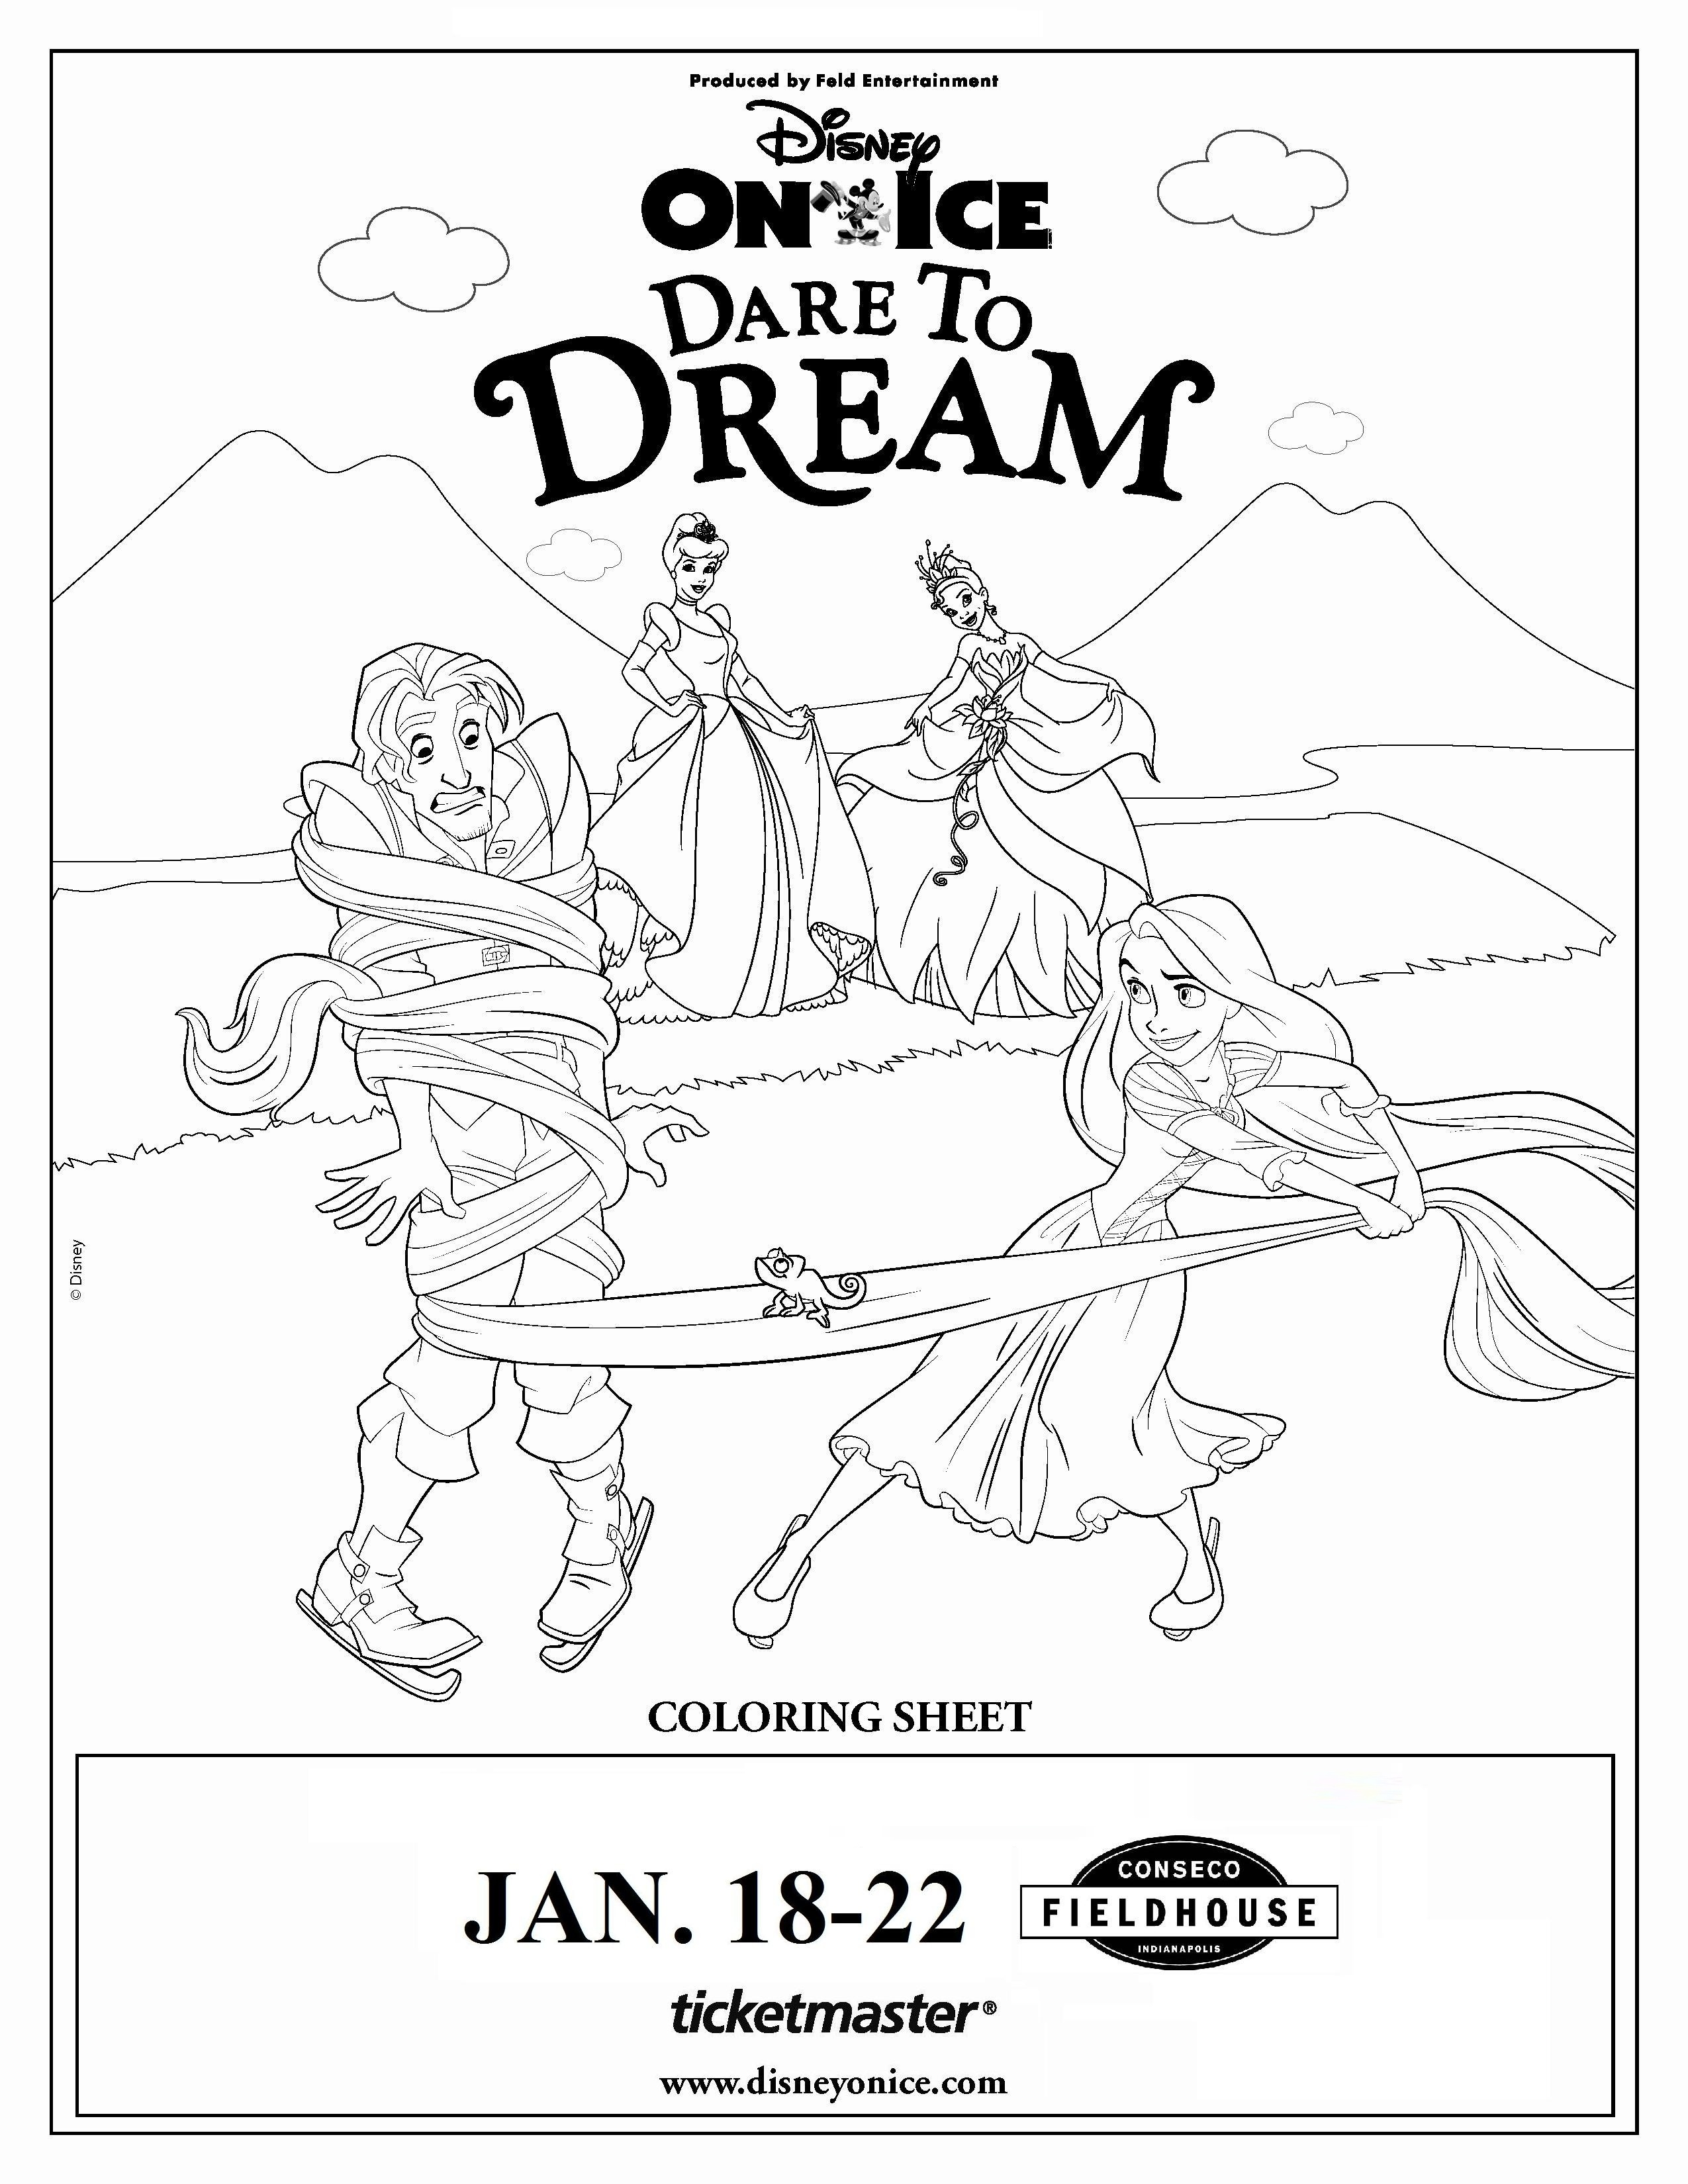 Disney on ice dare to dream comes to indiana for Disney on ice coloring pages